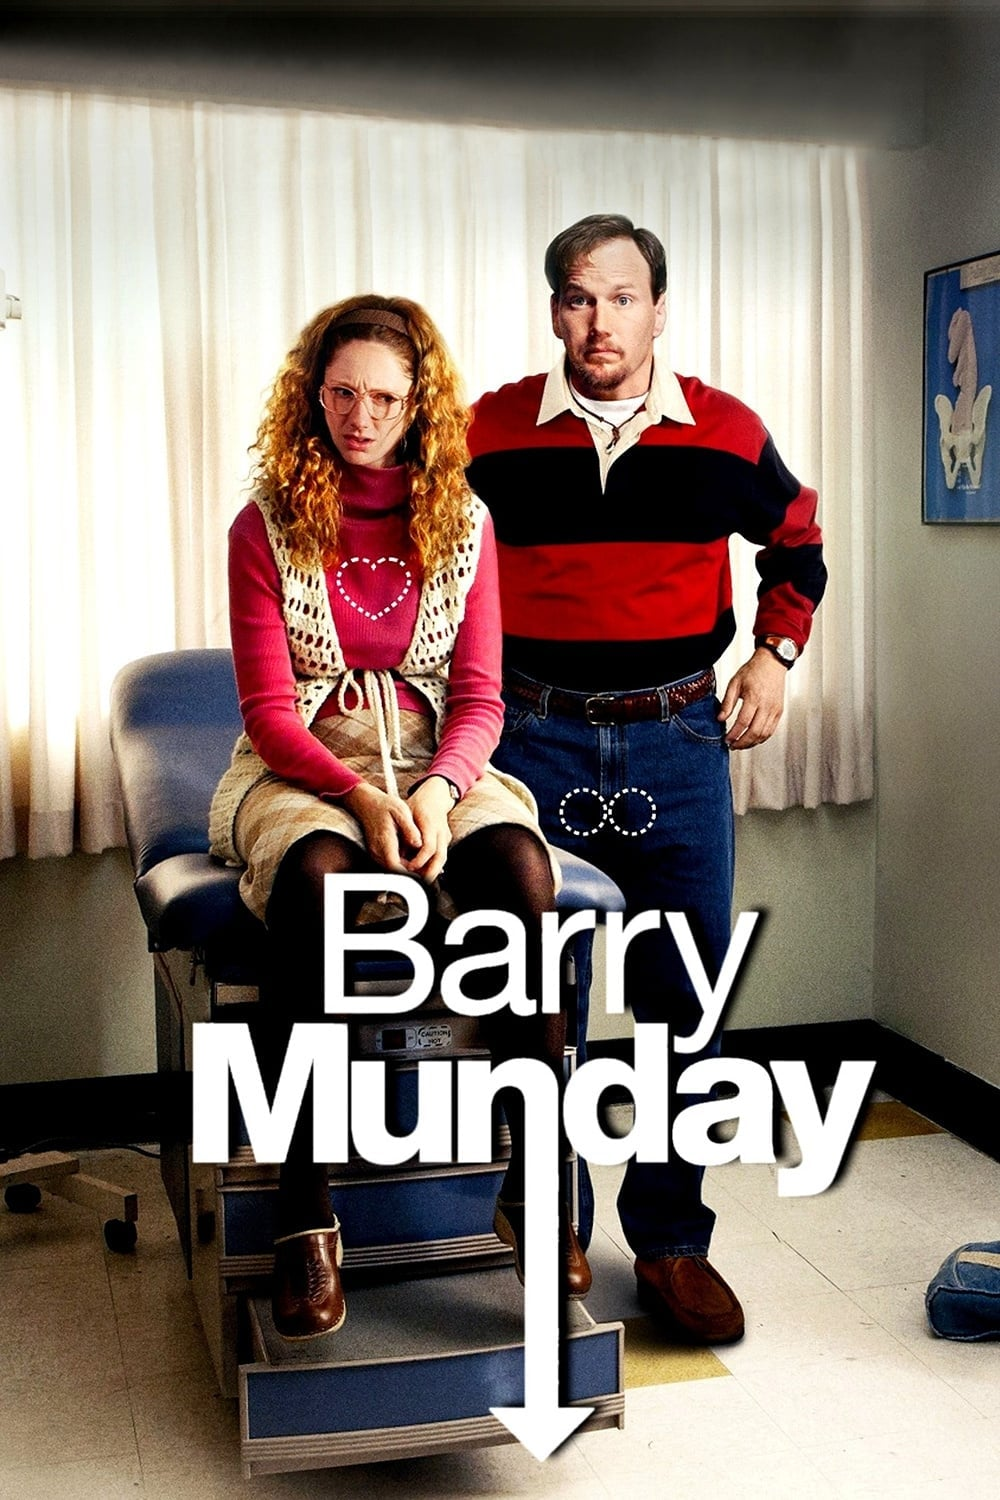 Barry Munday on FREECABLE TV